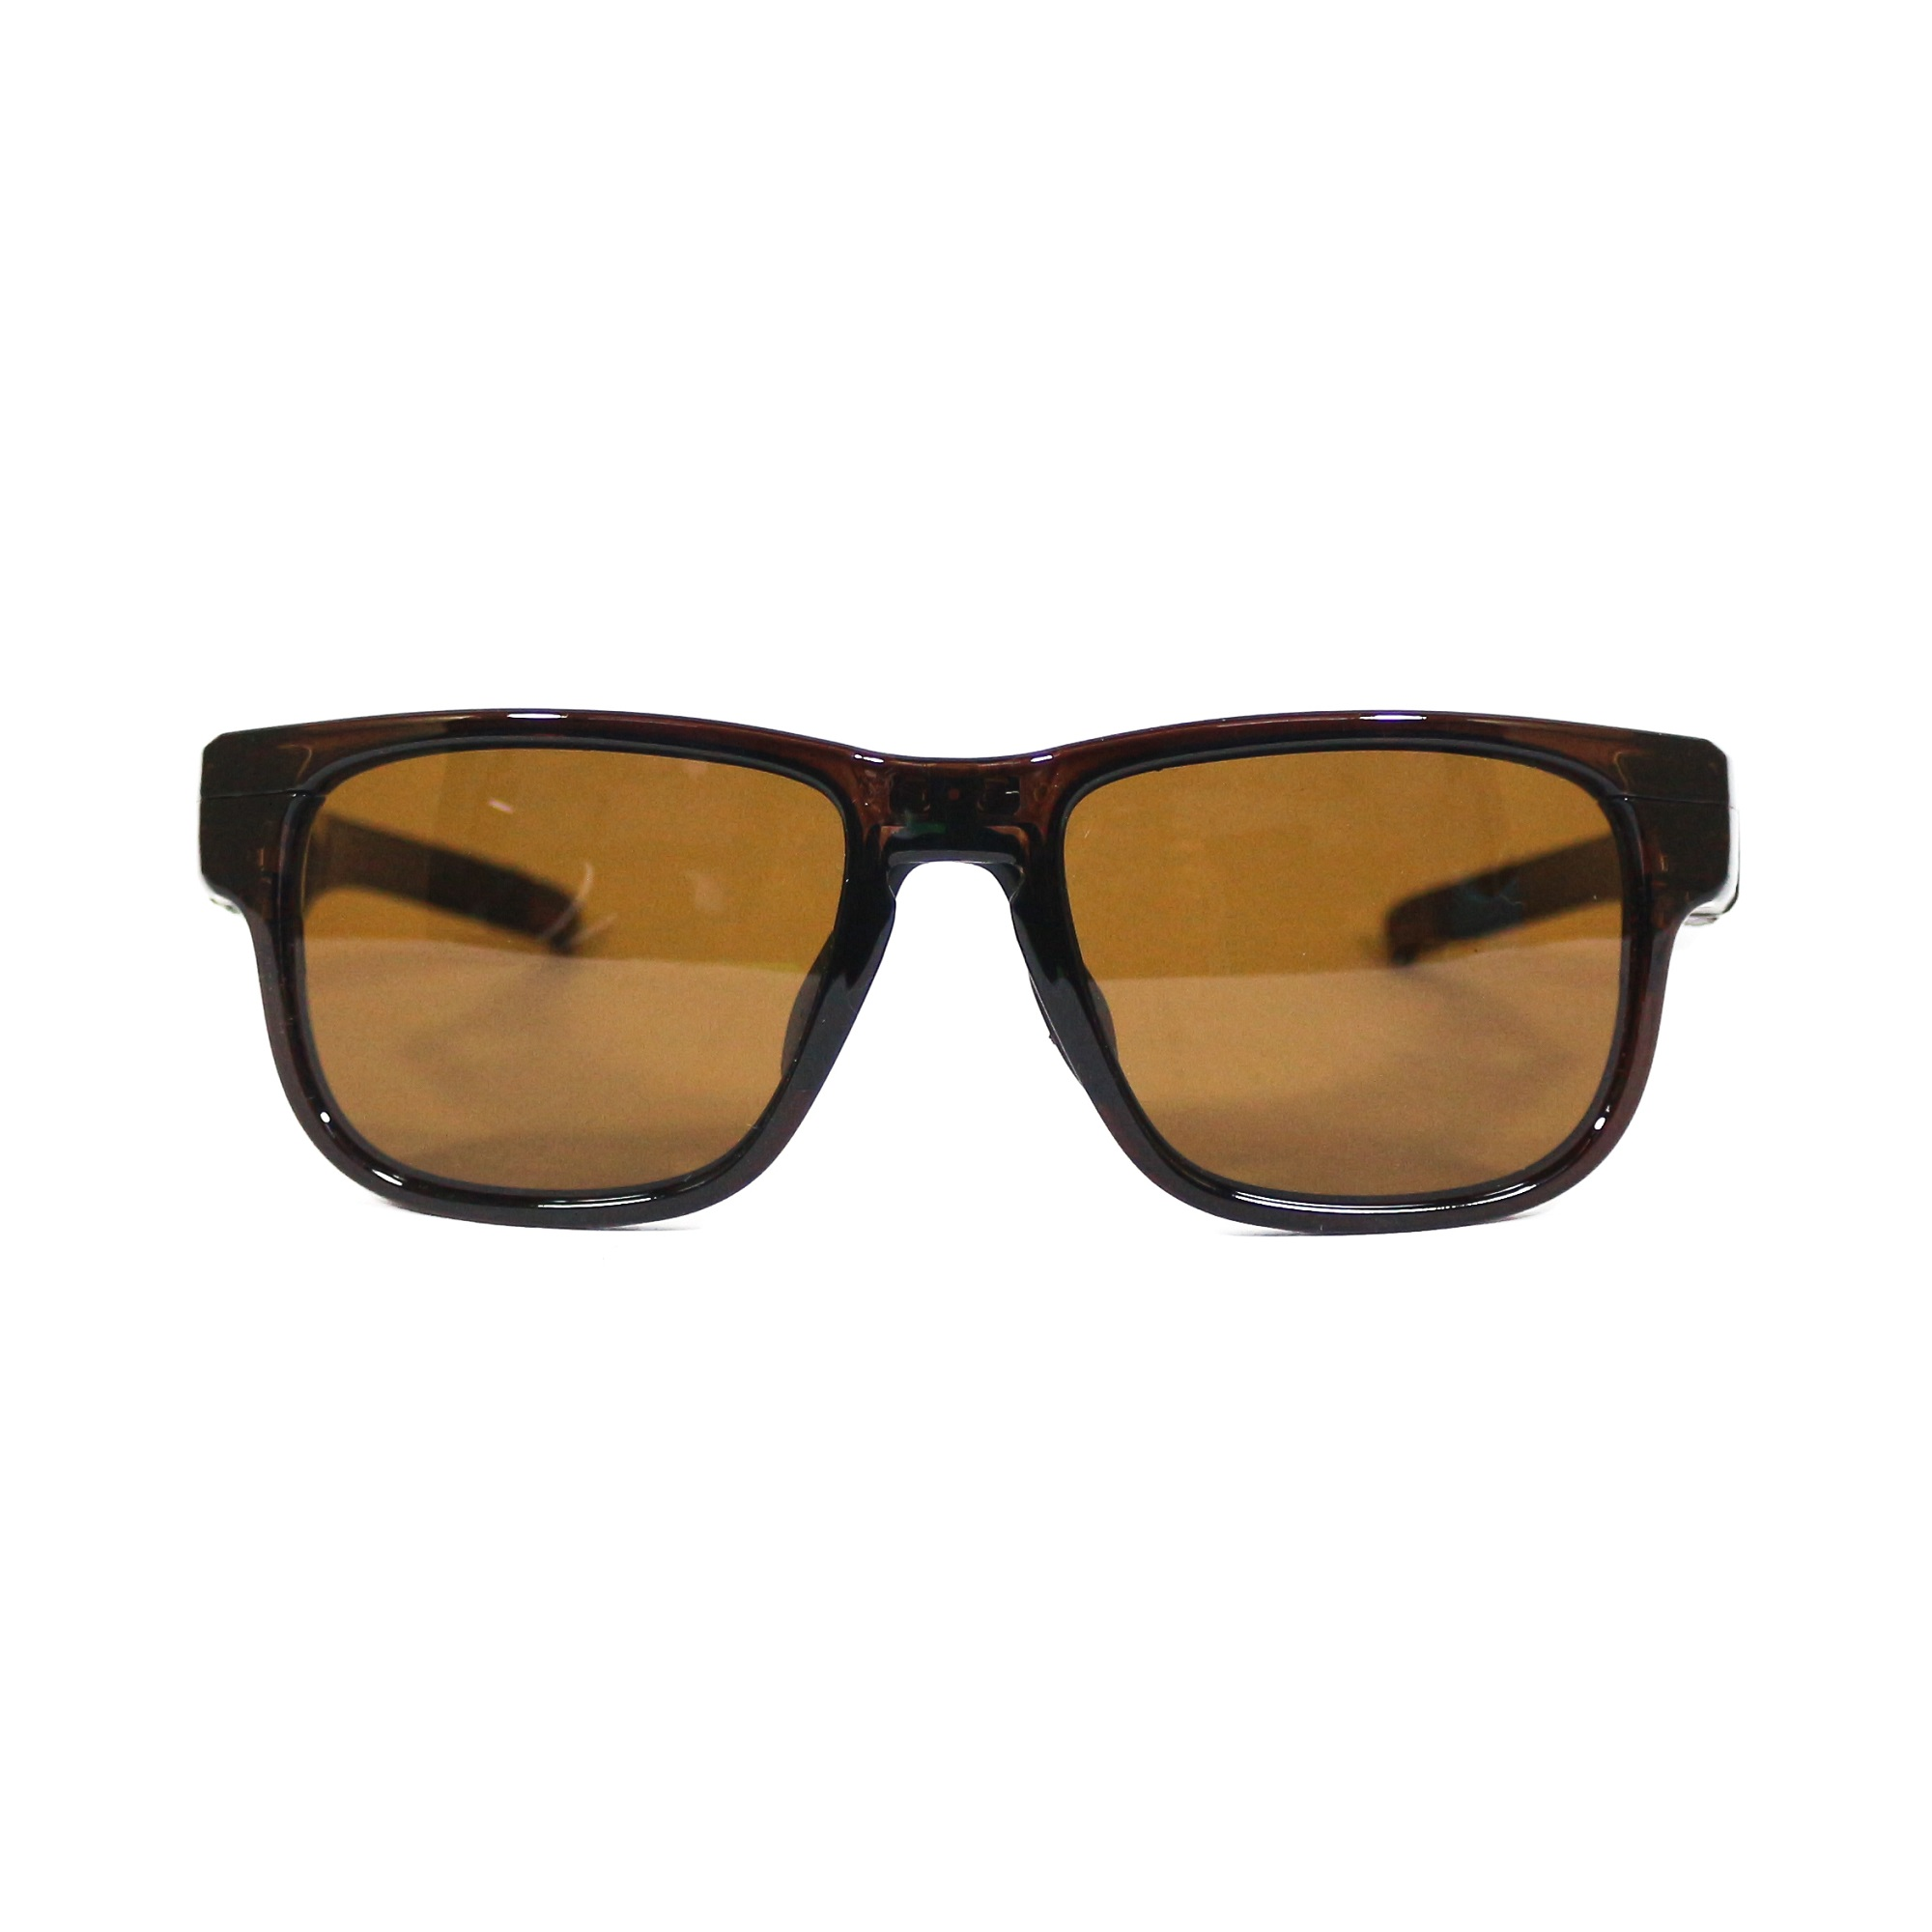 Zeque Polarised Fishing Sunglasses Bunny Walk BW-0183F Clr Brown/Blk (0839)